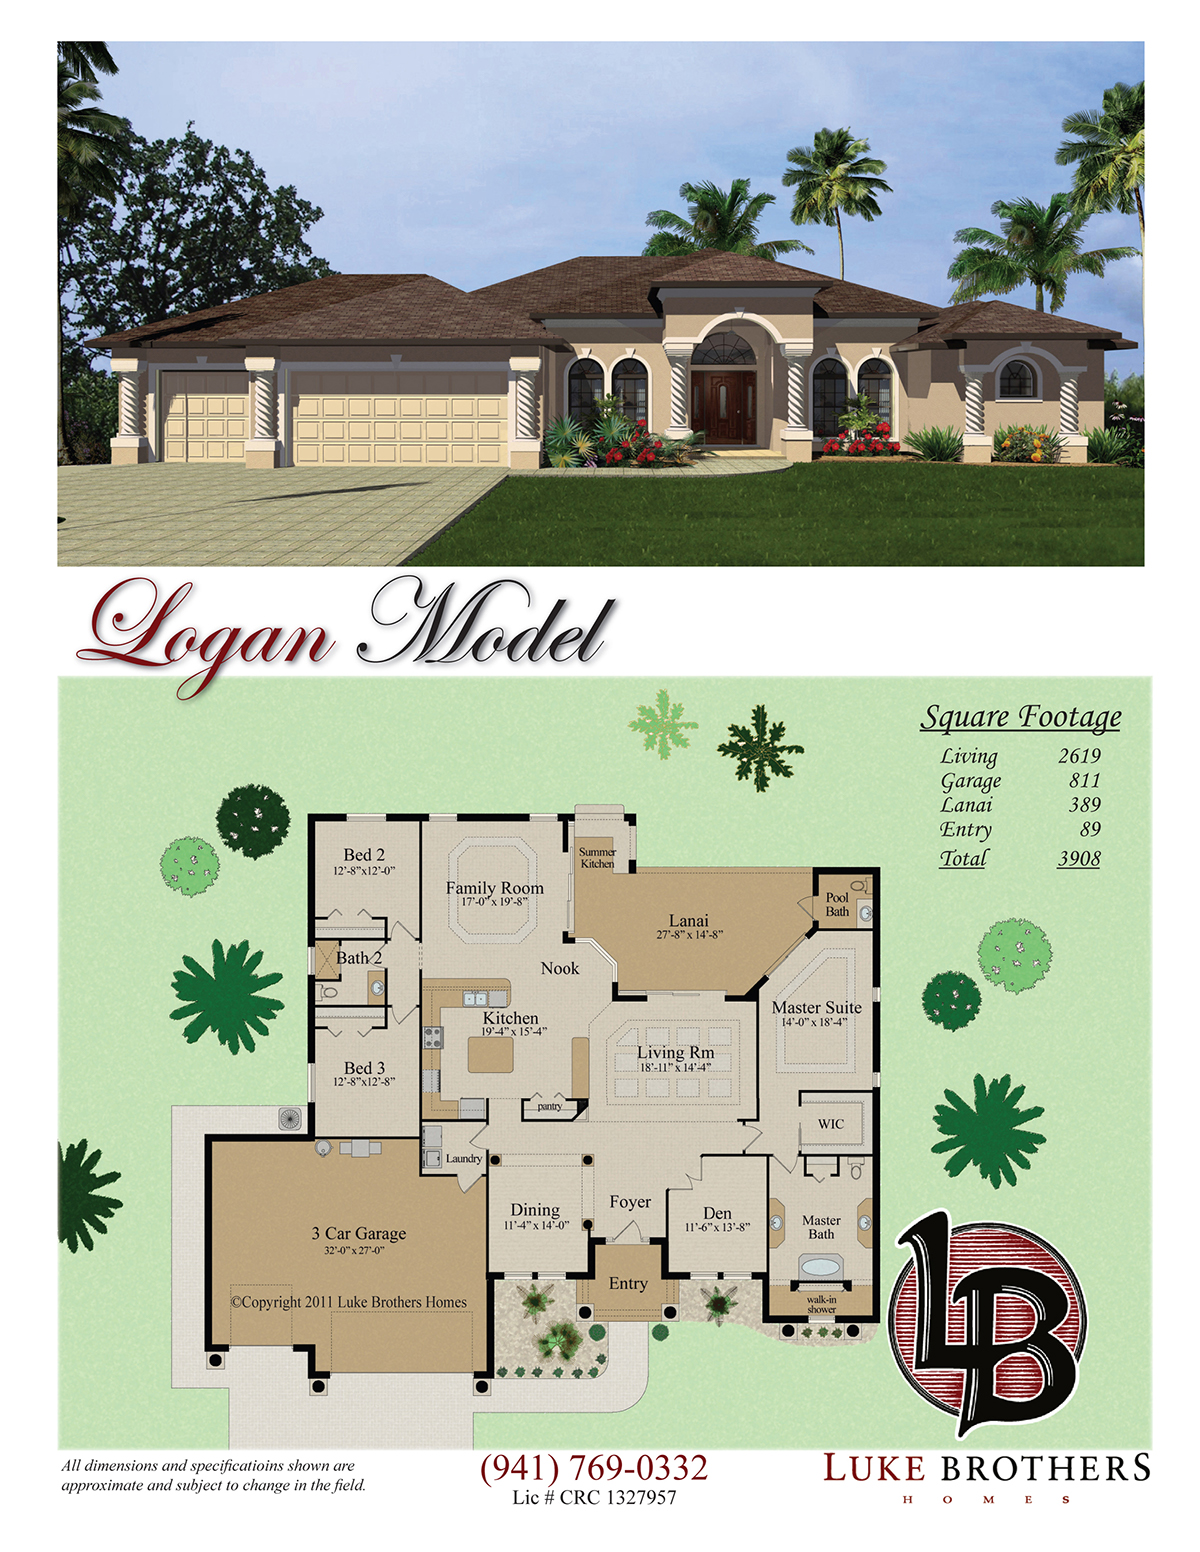 Color Floor Plan And Brochure Sample   Florida Home Style Standard Design  For Builder Client. CAD Work Drawn In Softplan V. 2014, Color And Texture  Work In ...